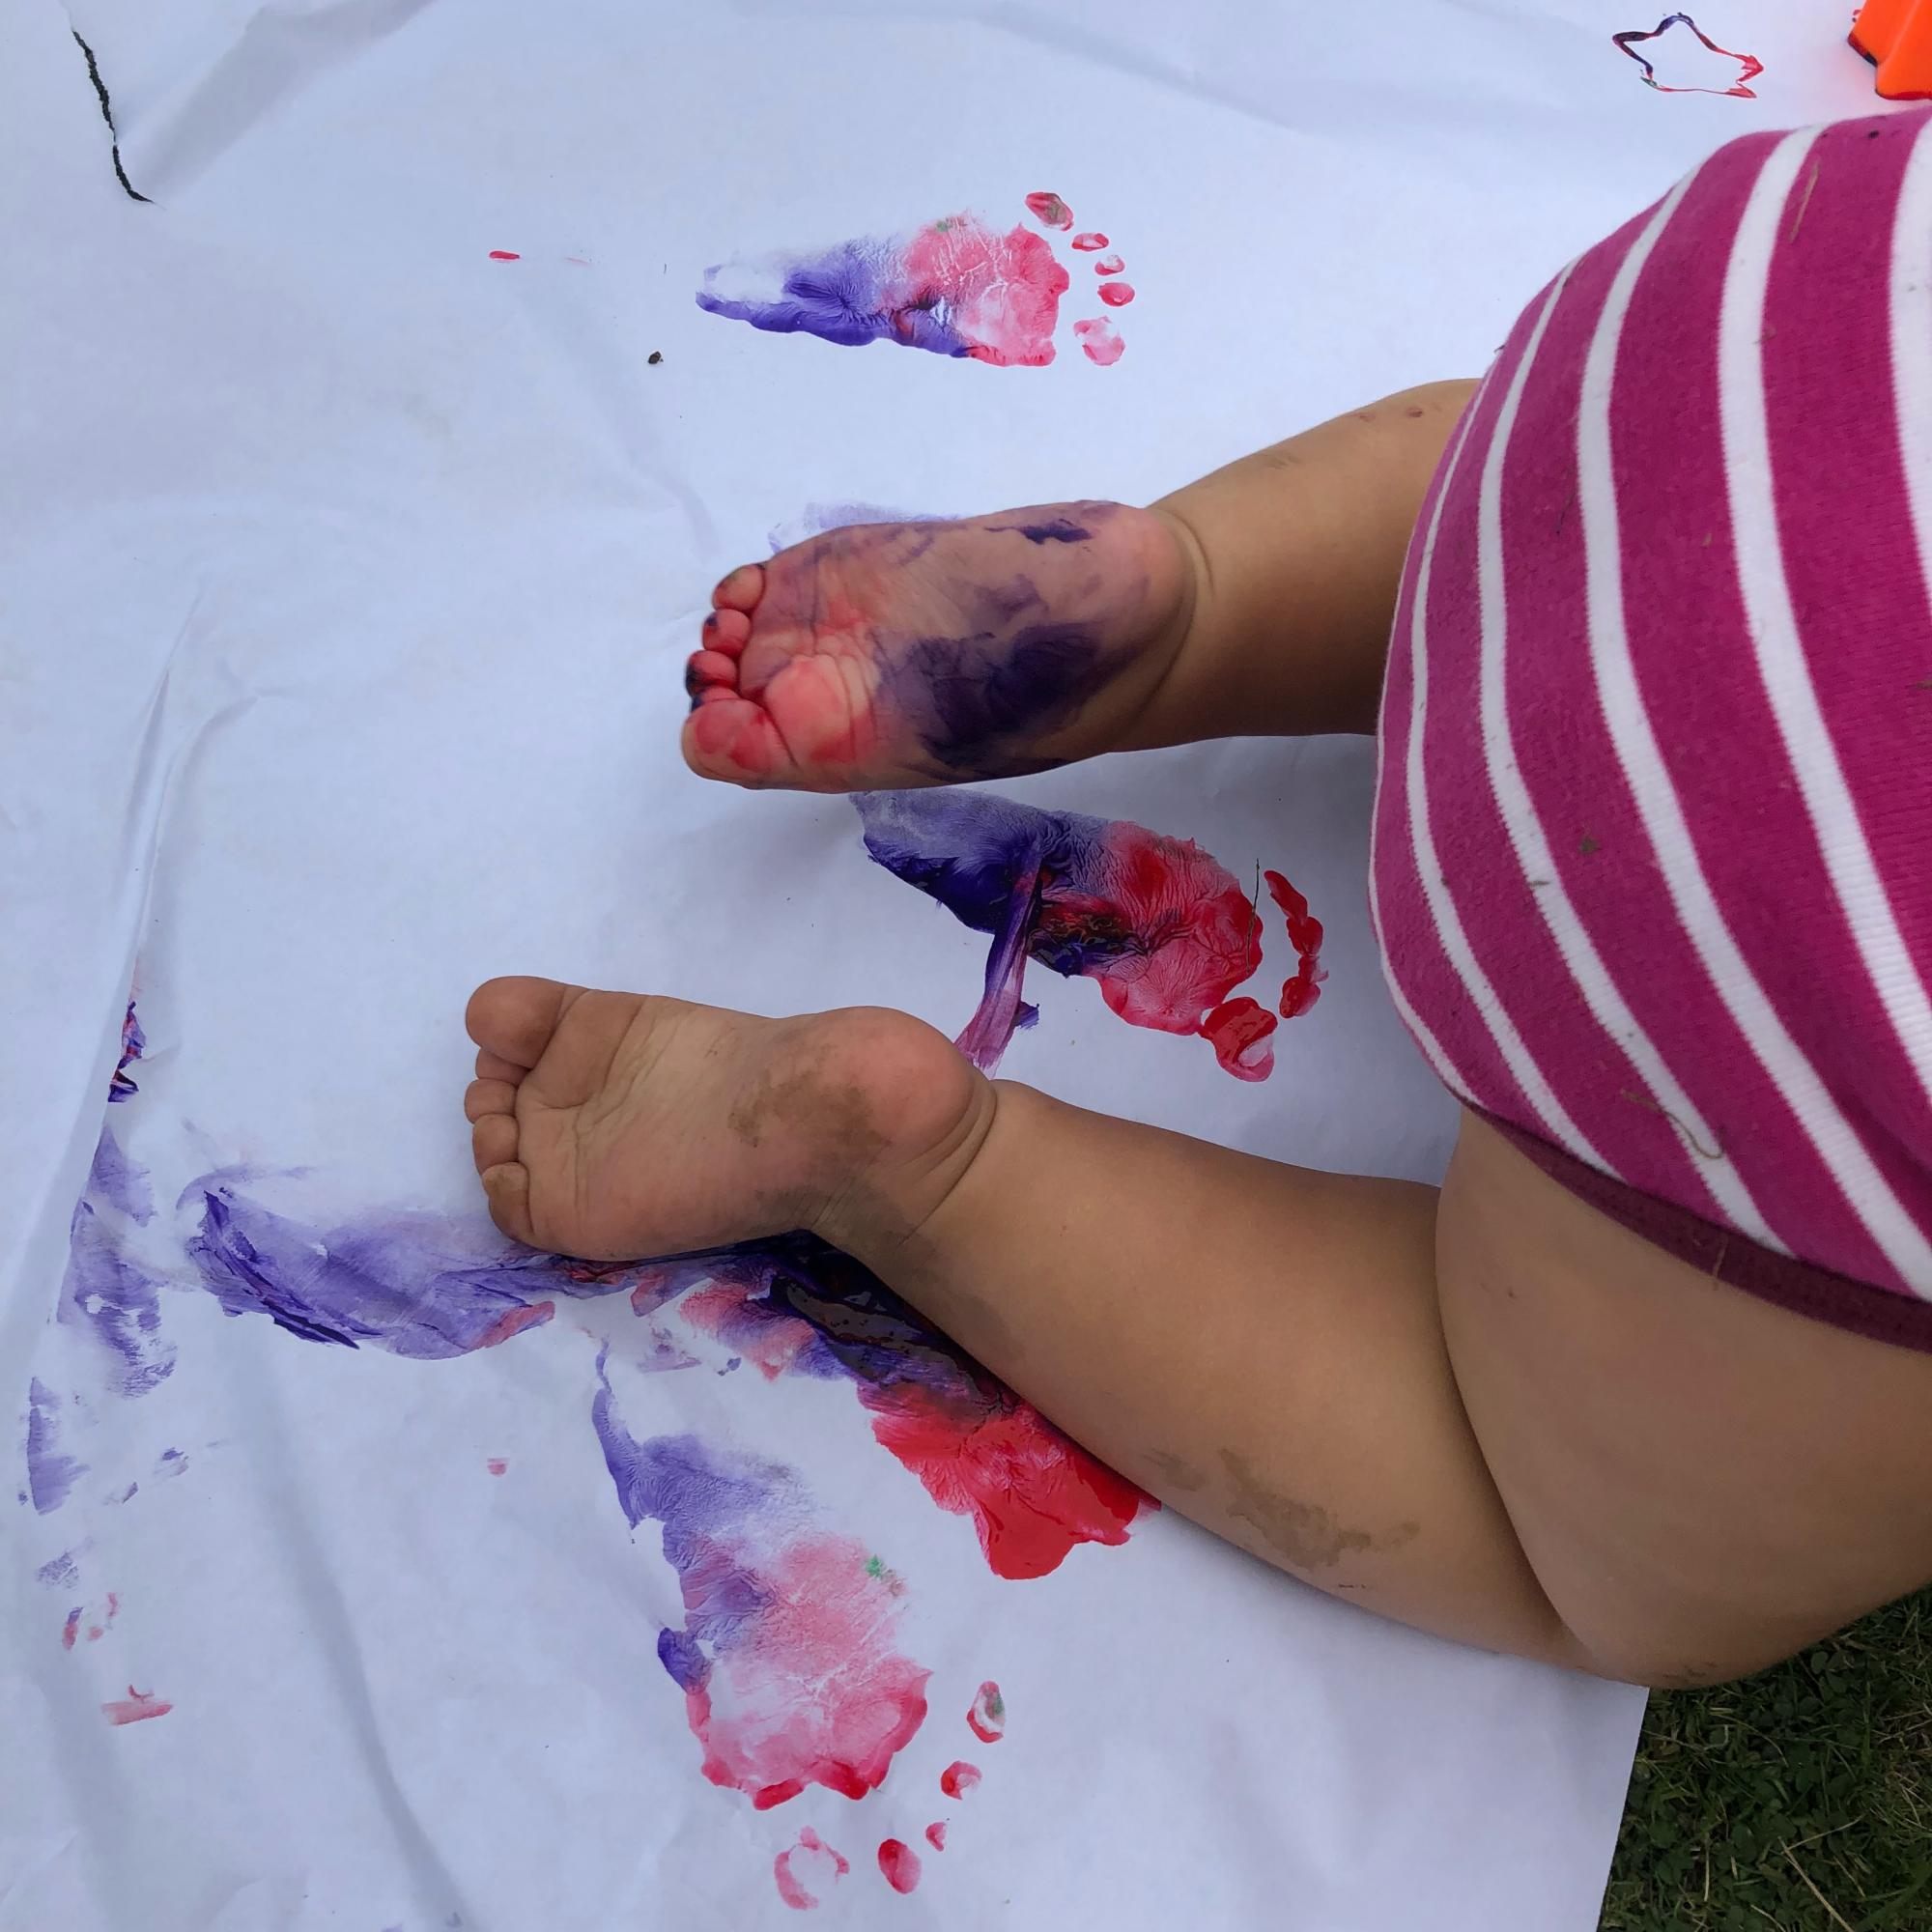 Baby crawling with paint on their feet doing an art activity on grass.